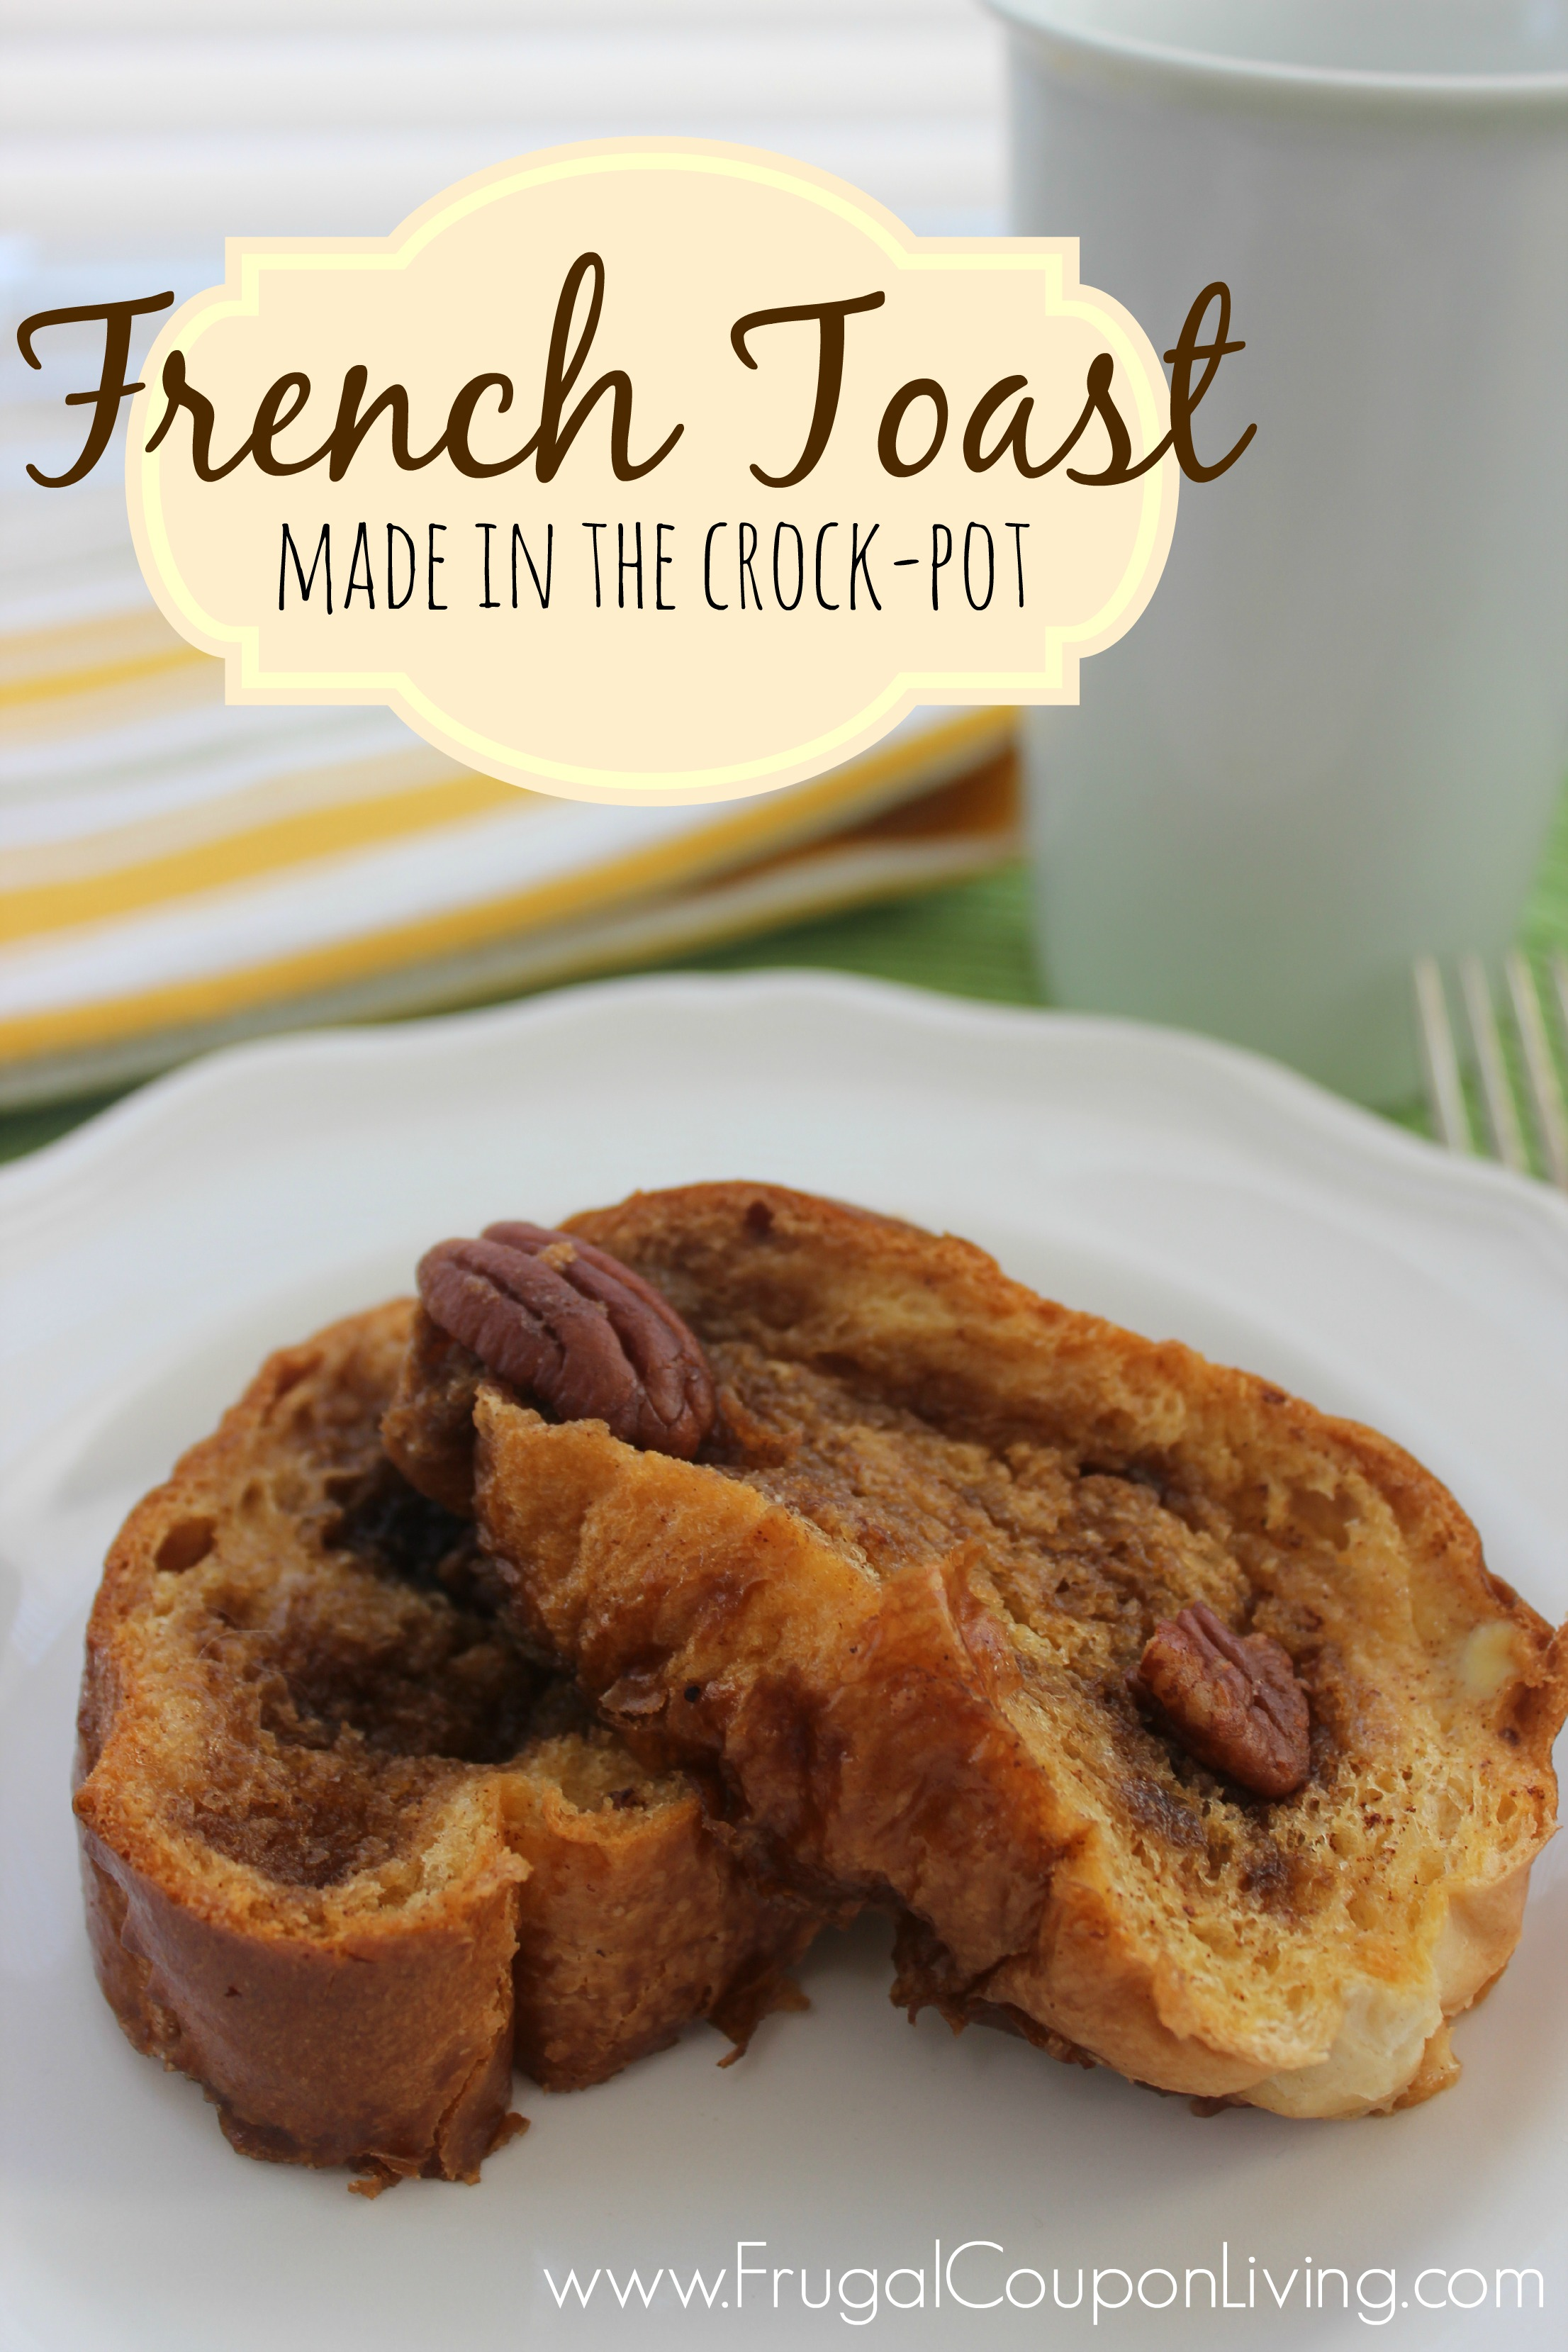 French toast discount coupons